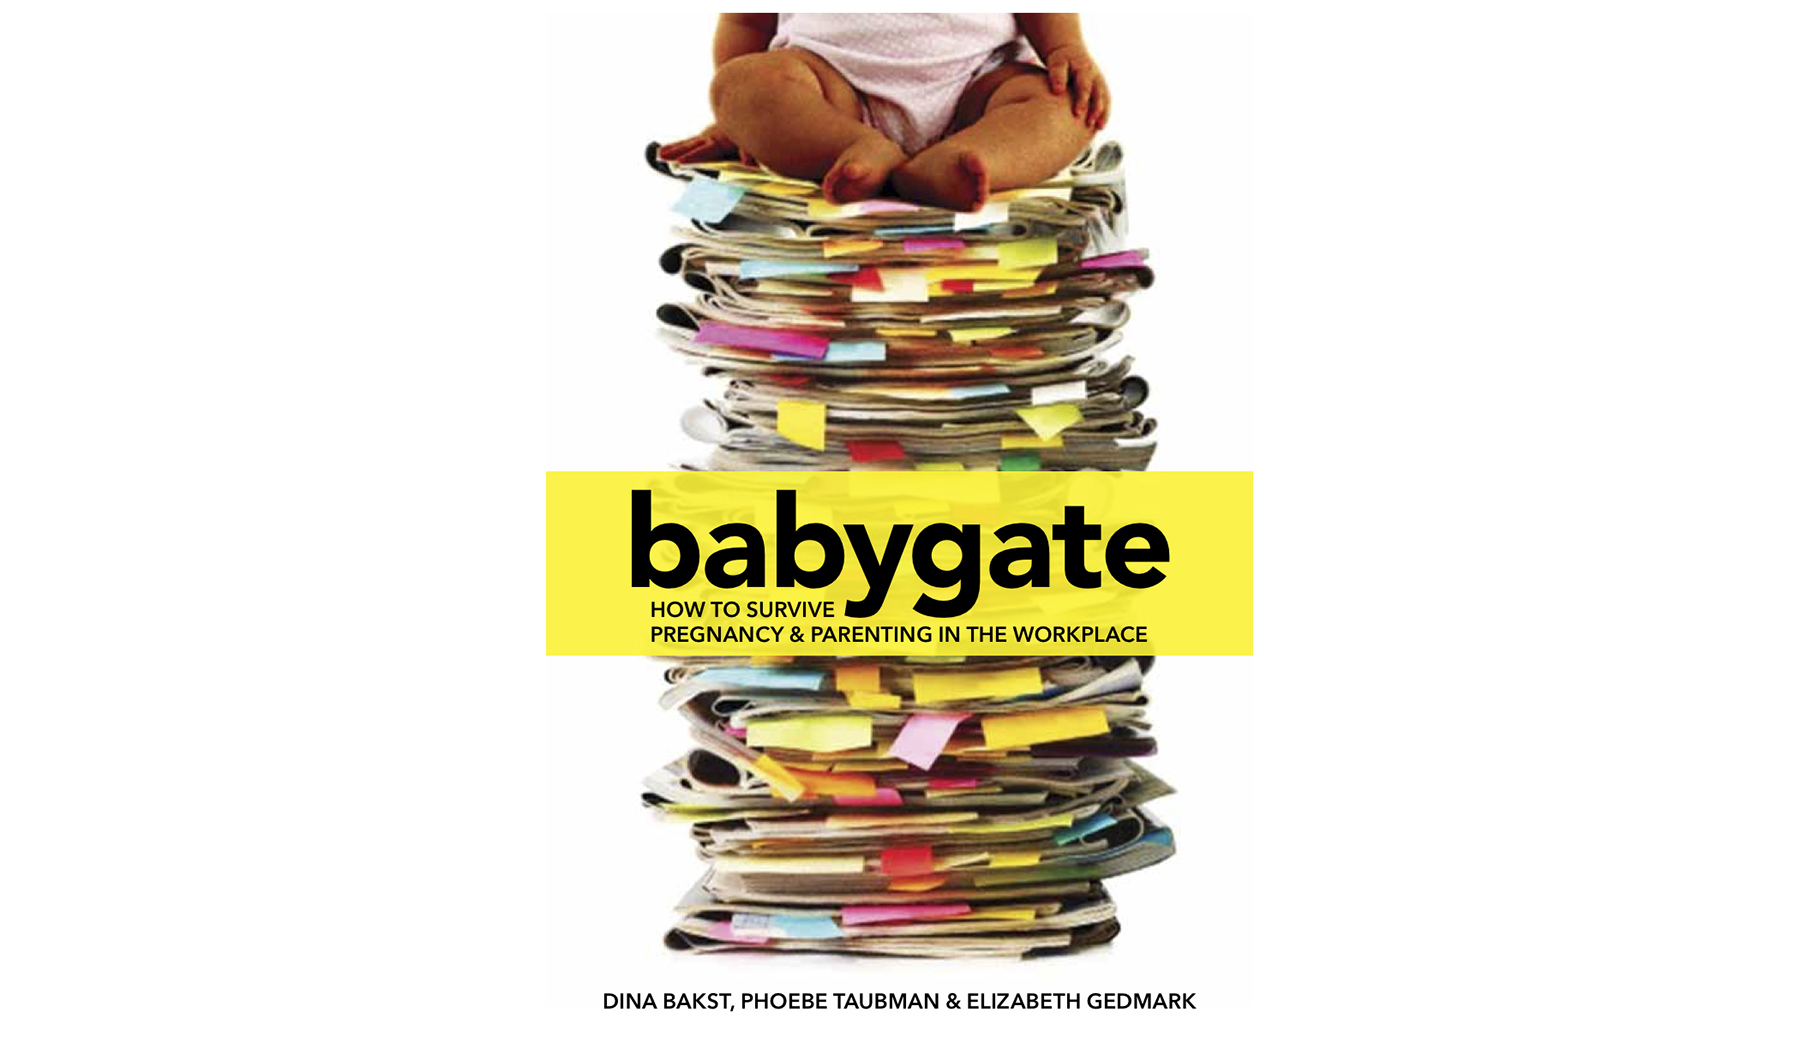 ‪Babygate: How to Survive Pregnancy and Parenting in the Workplace, by Dina Bakst, Phoebe Taubman, and Elizabeth Gedmark